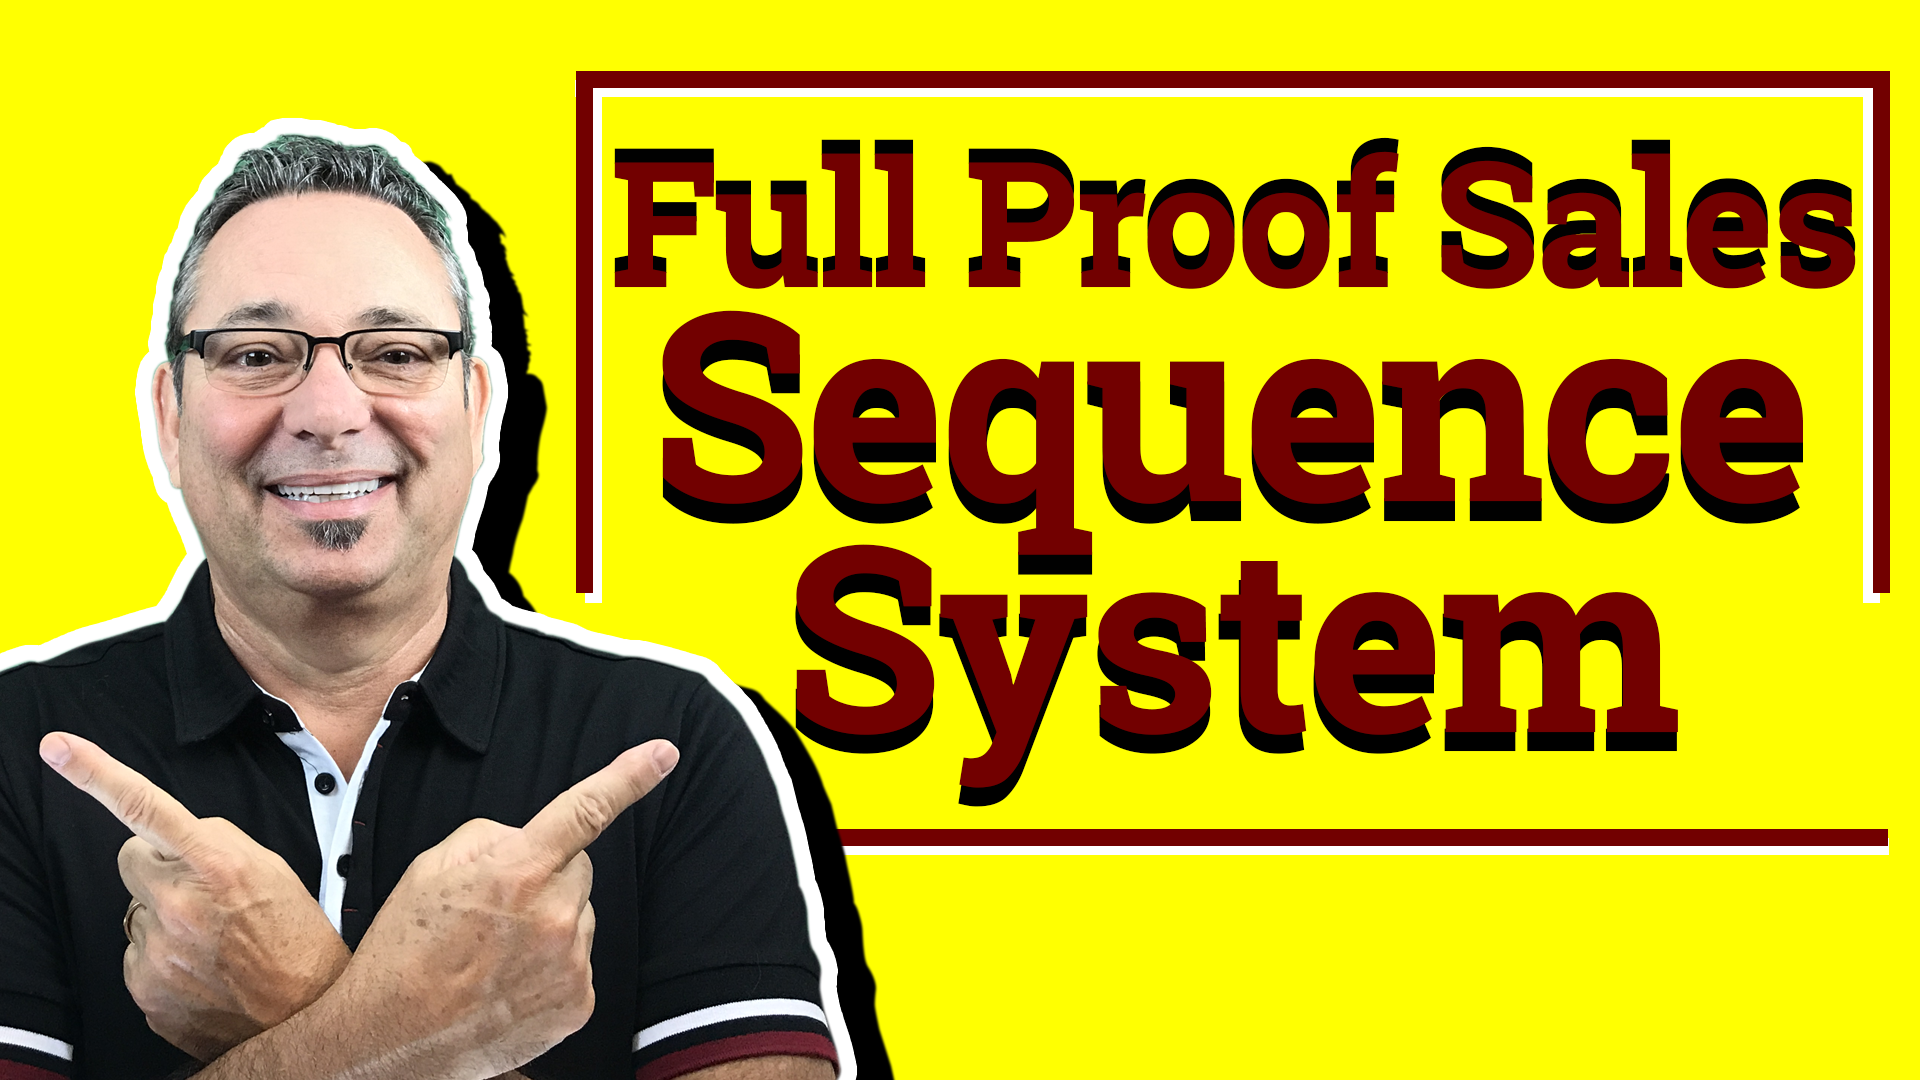 Full proof sales sequence system